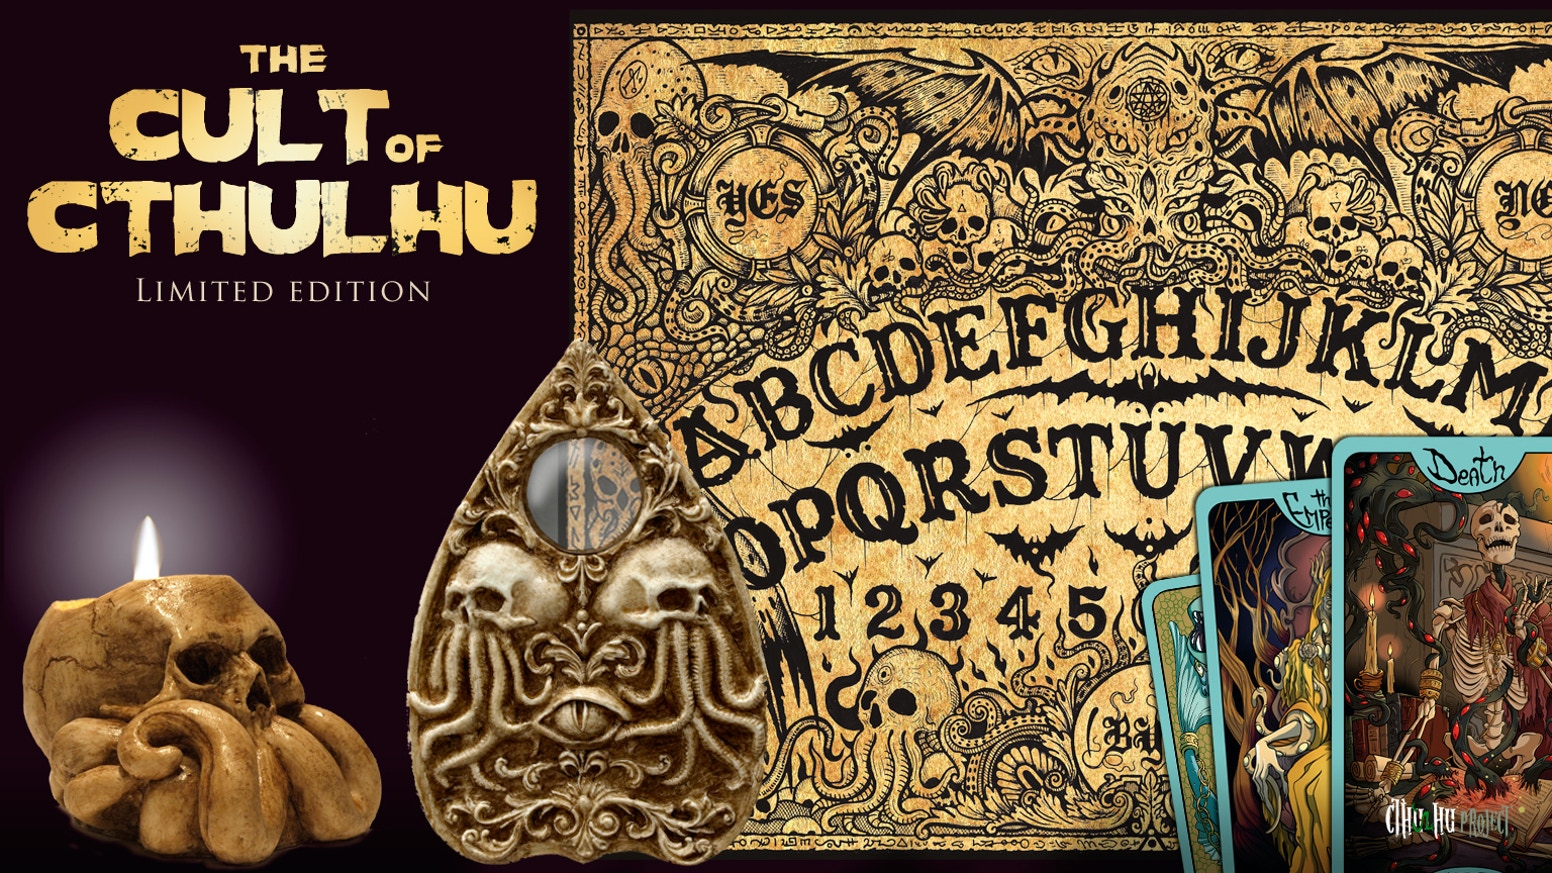 The amazing Cthulhu Ouija board made of wood with the Eye planchette and the Skull candleholder, only for cultists!